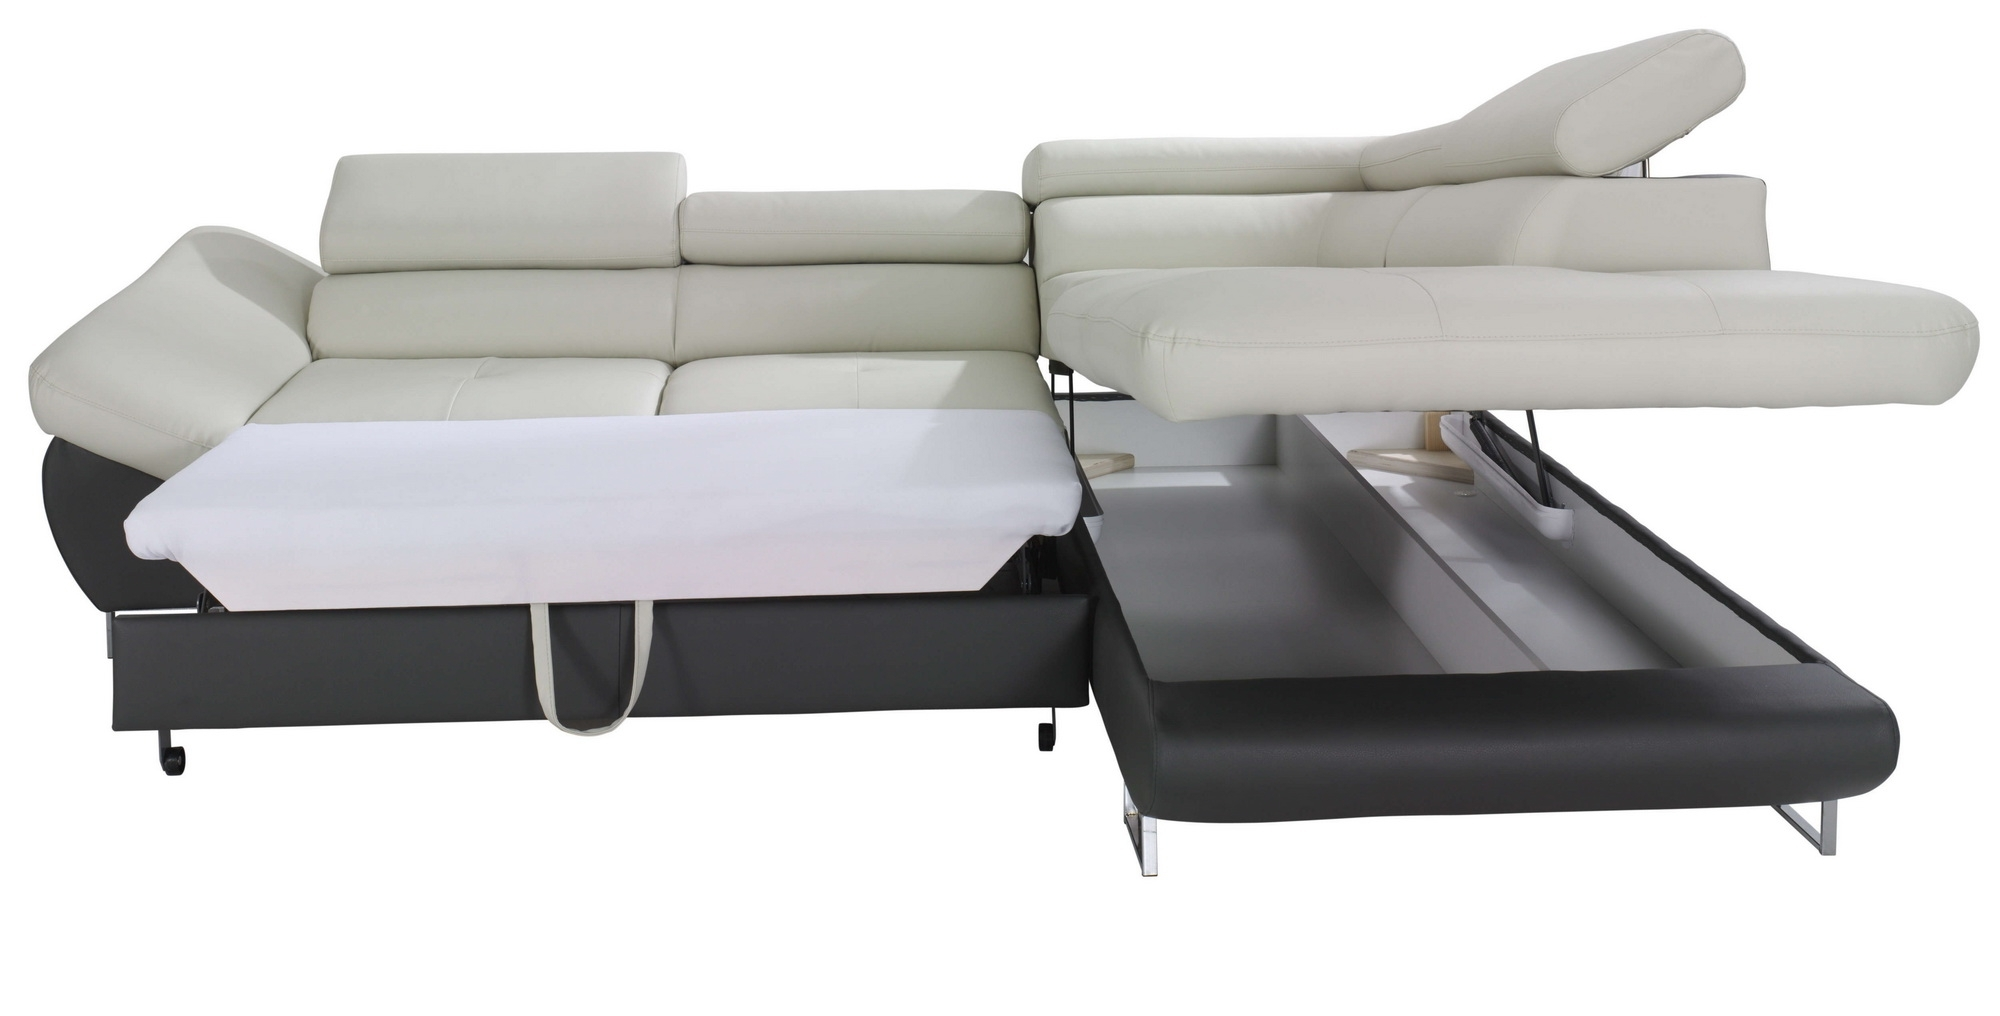 Best And Newest Storage Sofas Within Fabio Sectional Sofa Sleeper With Storage, Creative Furniture (View 7 of 15)